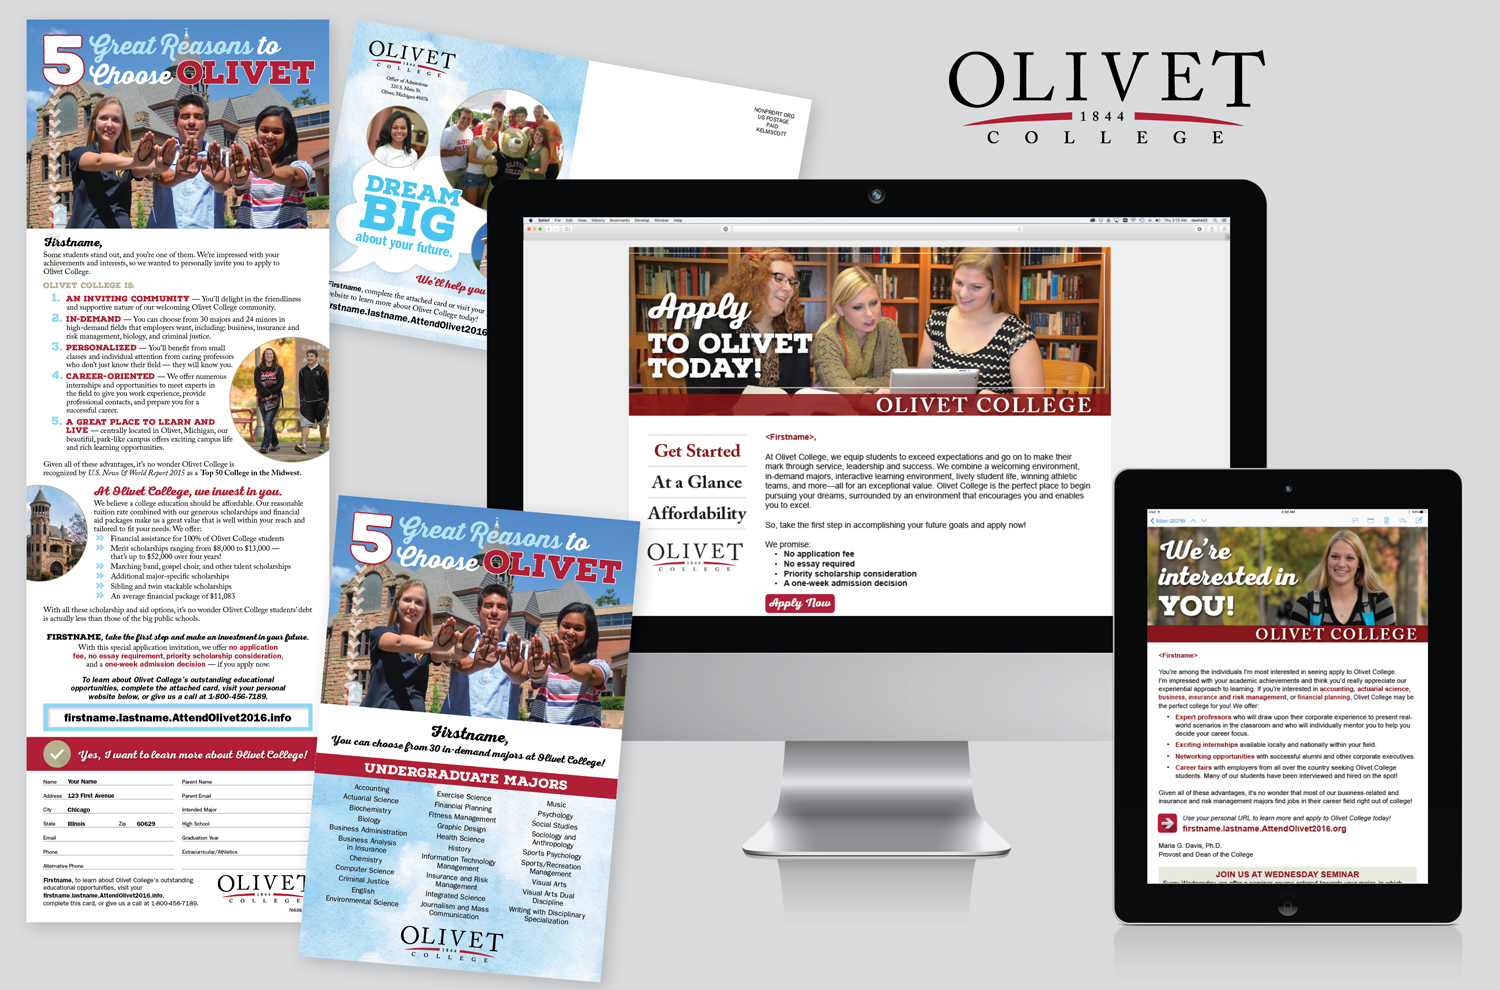 FALL SENIOR SEARCH FOR OLIVET COLLEGE